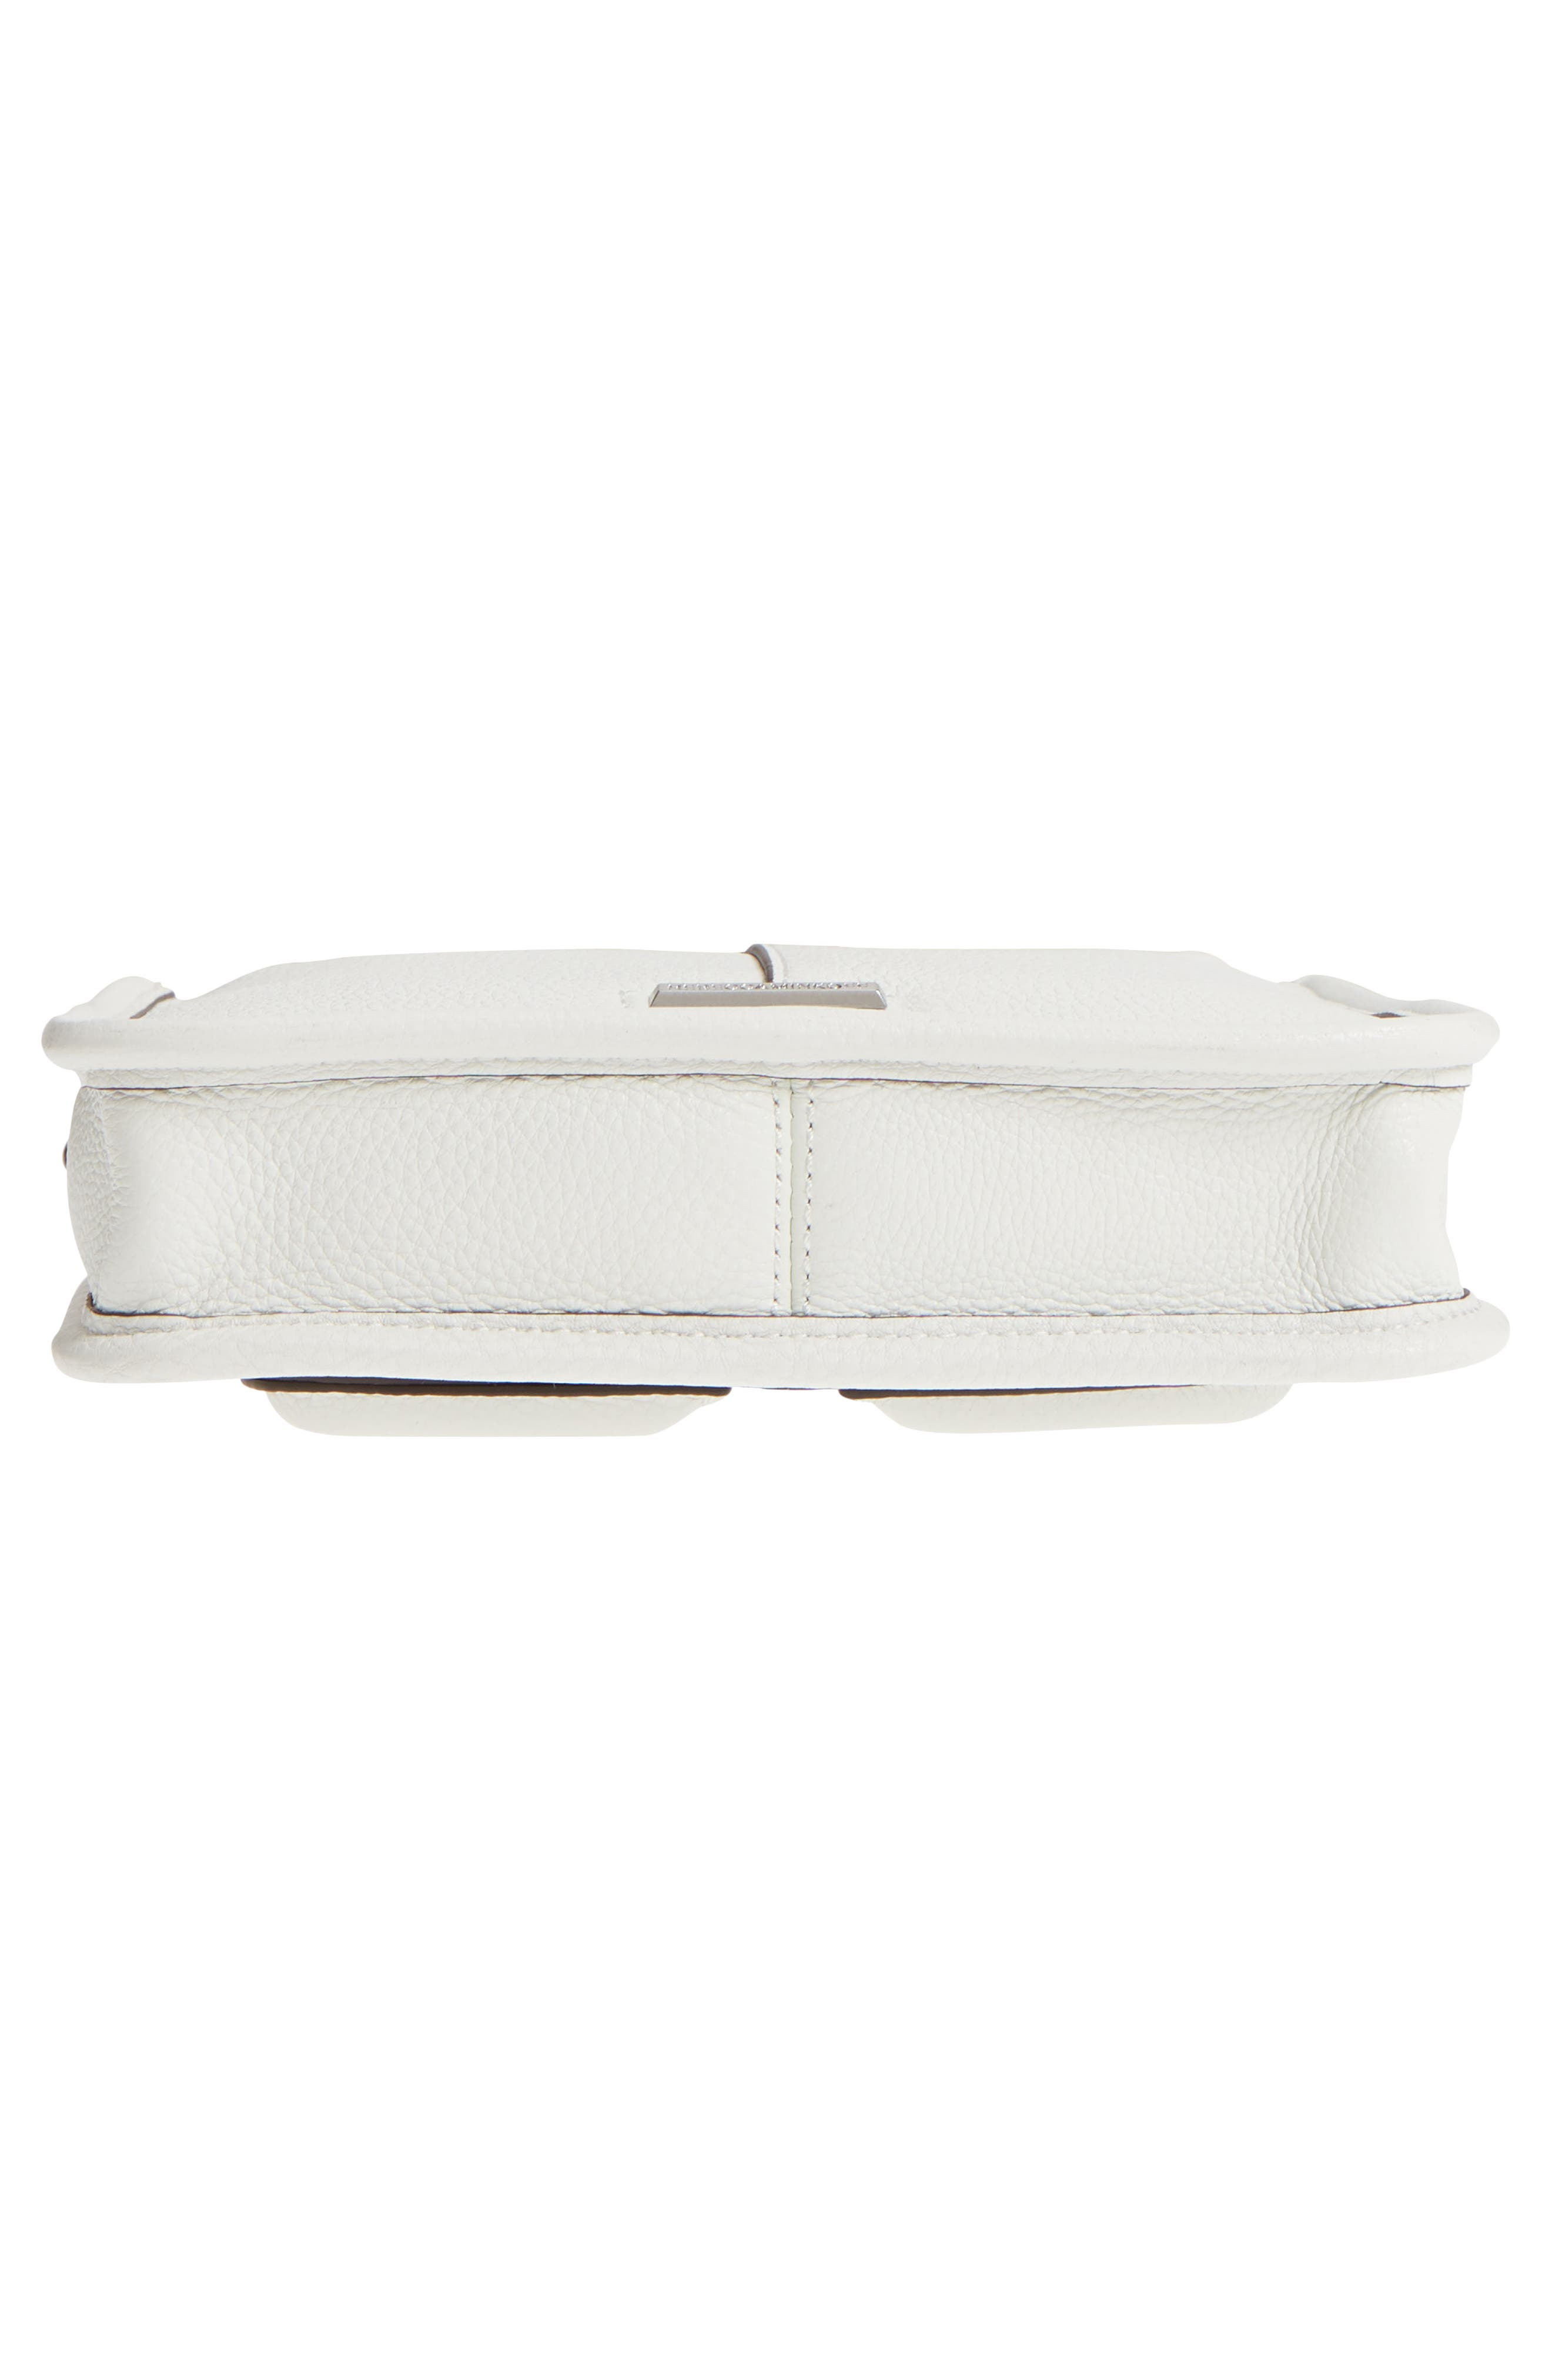 Mini Unlined Leather Feed Bag,                             Alternate thumbnail 6, color,                             Bianco/ Green